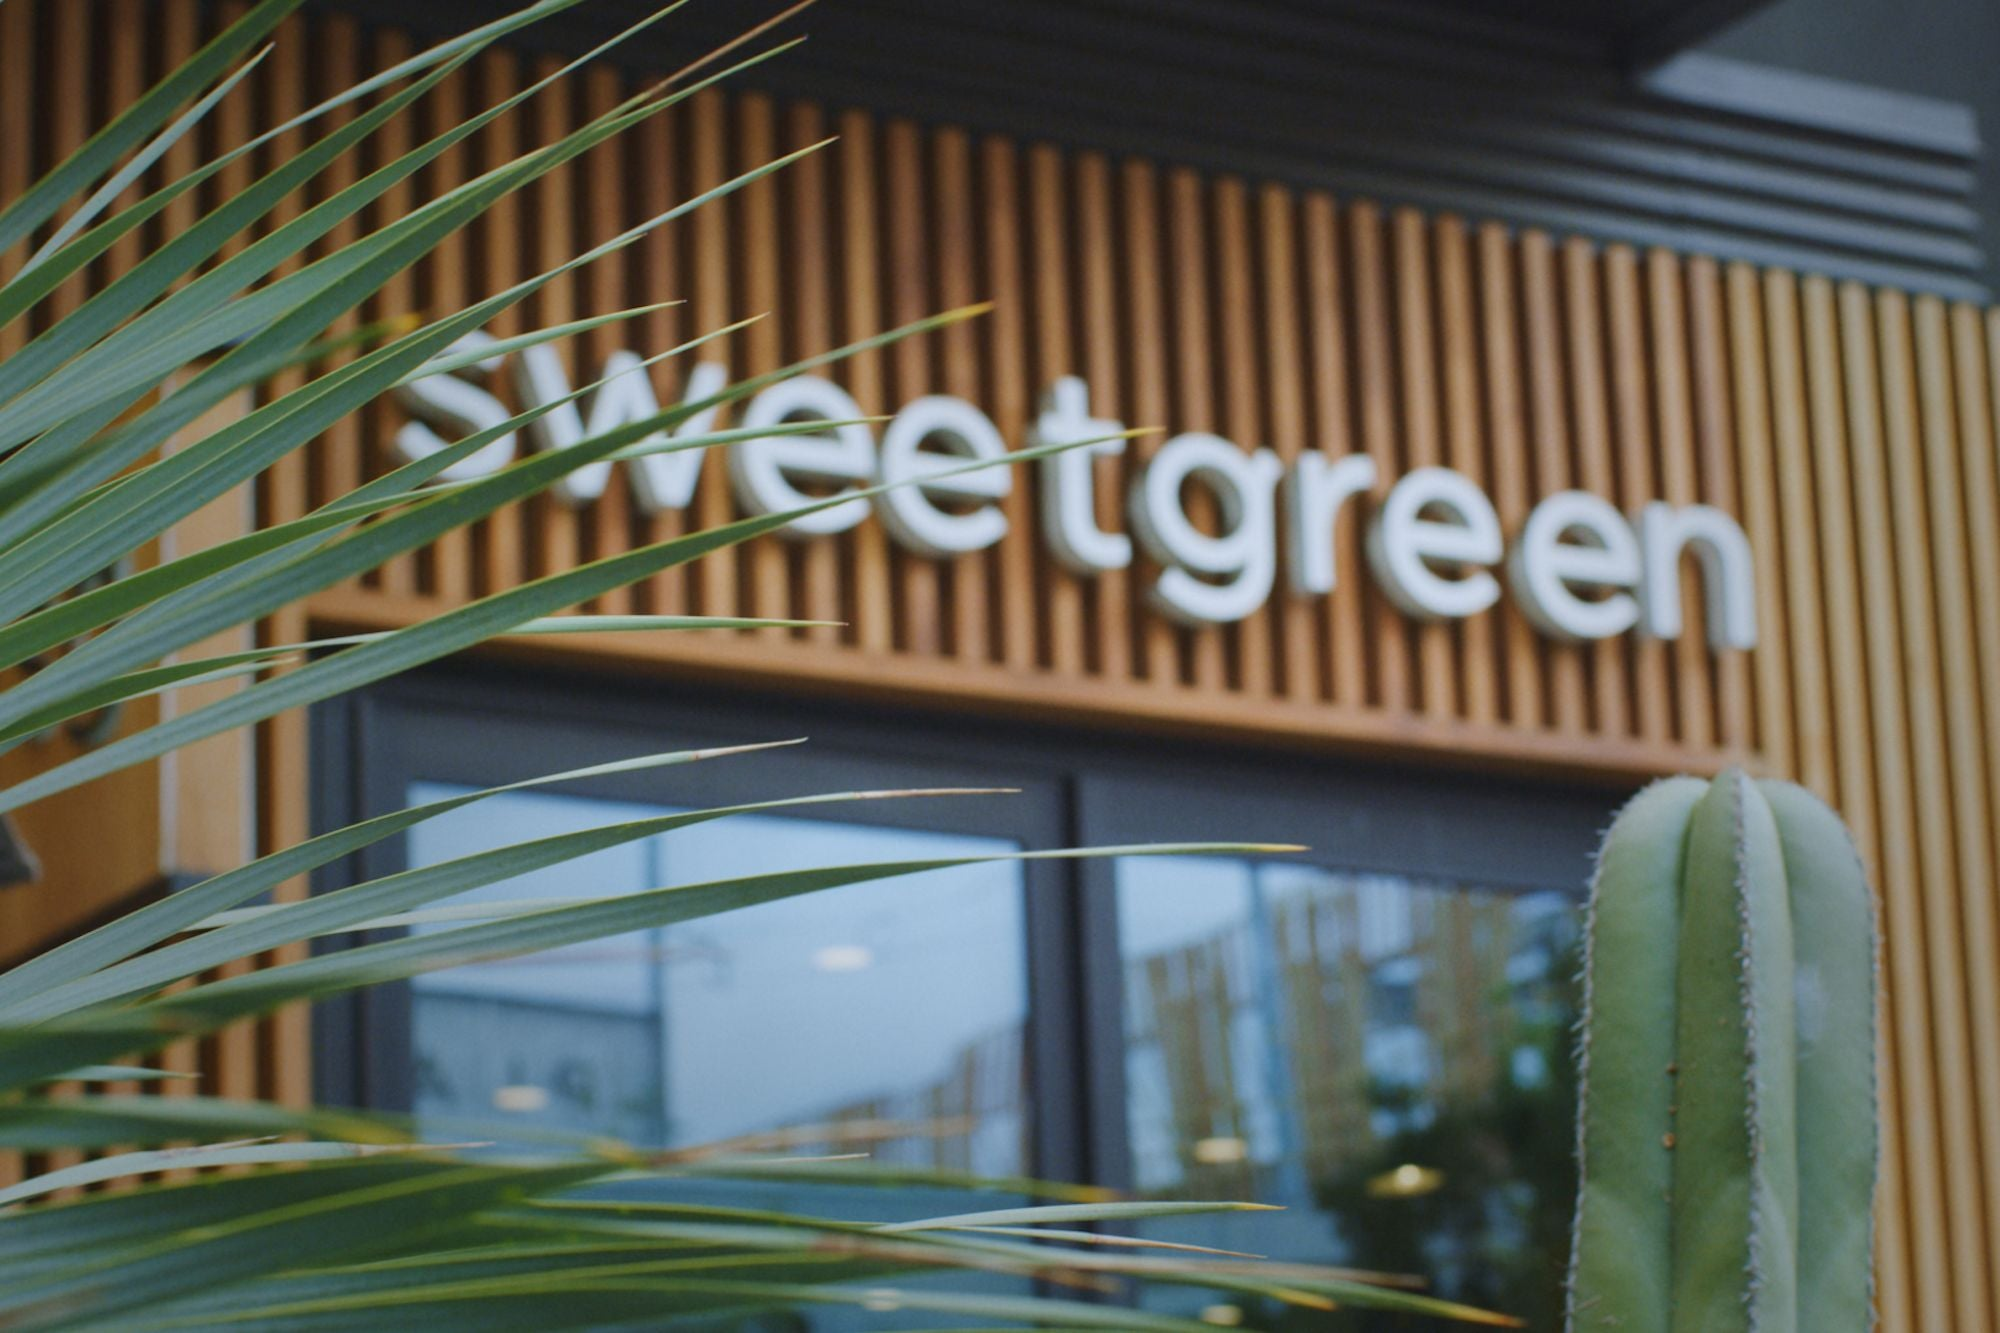 , Sweetgreen Success: From Dorm Room Startup to Fast-Casual Salad Empire, Saubio Making Wealth